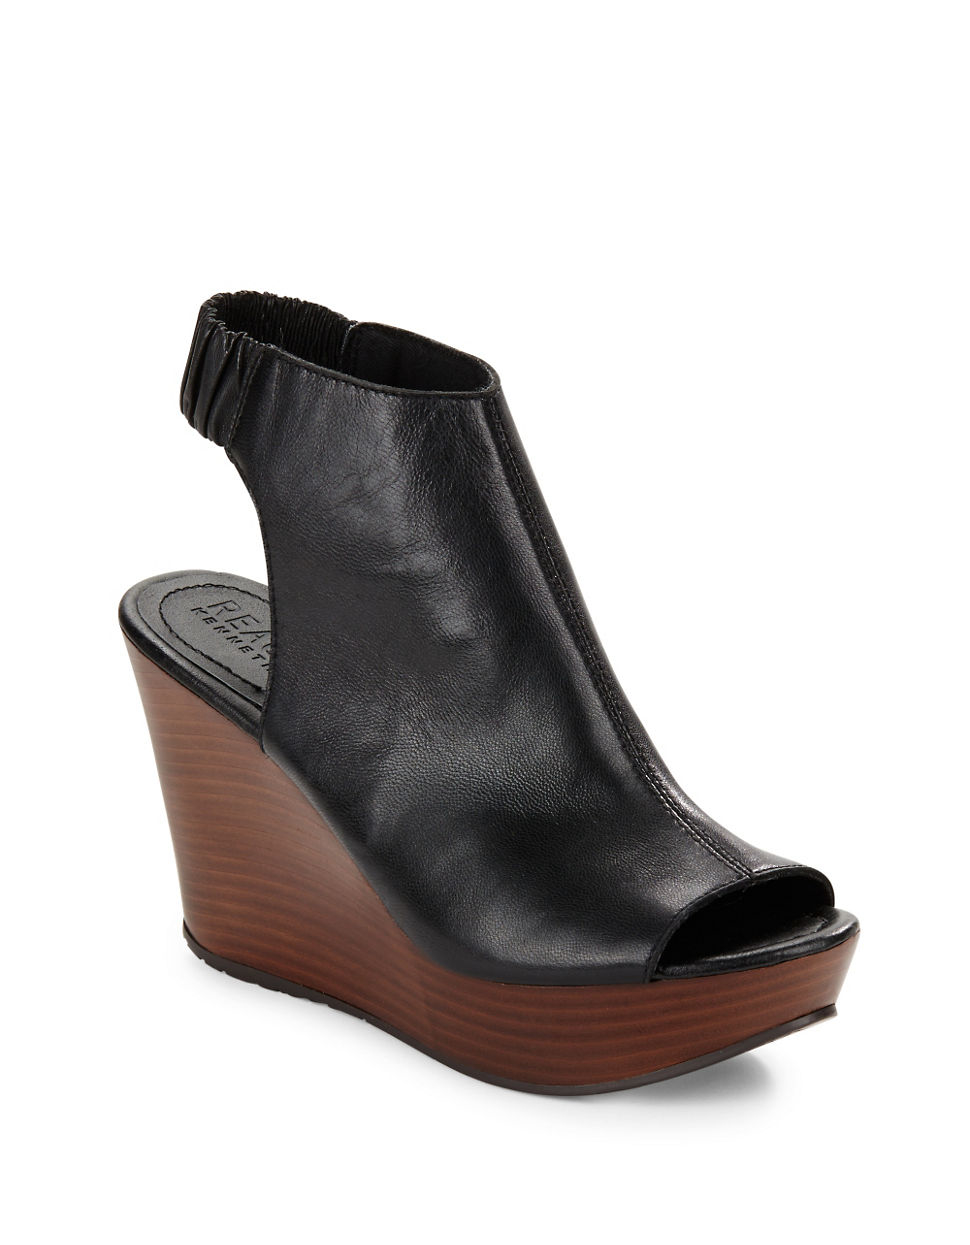 Kenneth Cole Reaction Sole Chic Leather Slingback Wedge